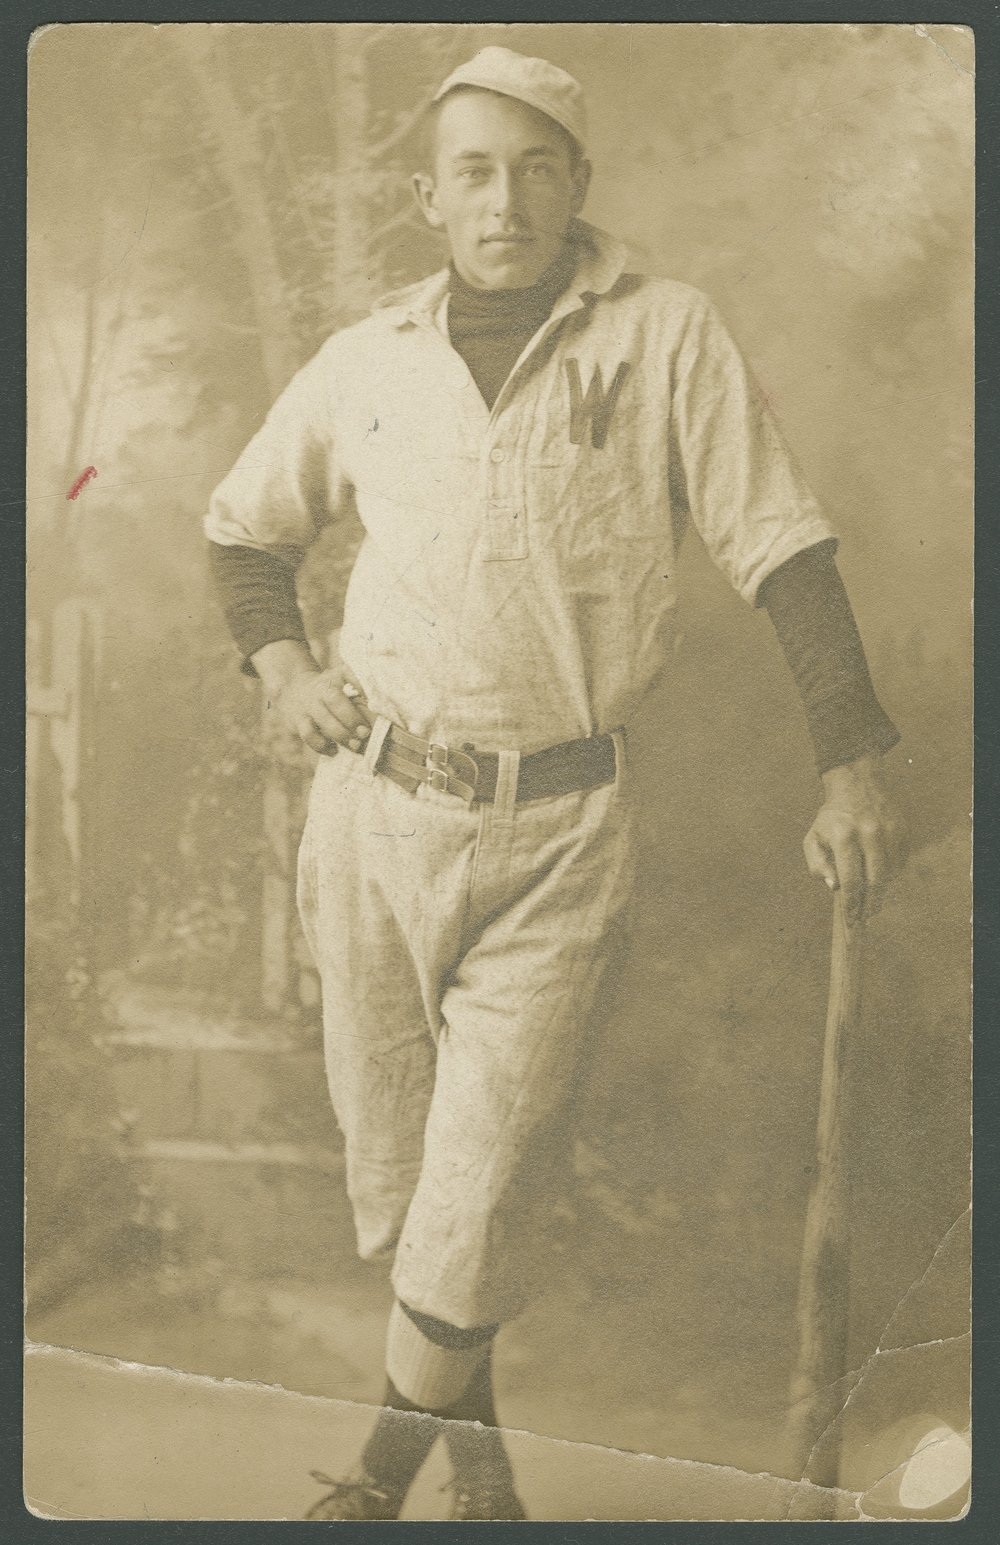 D. B. Grutzmacher in baseball uniform, Pottawatomie County, Kansas - 1